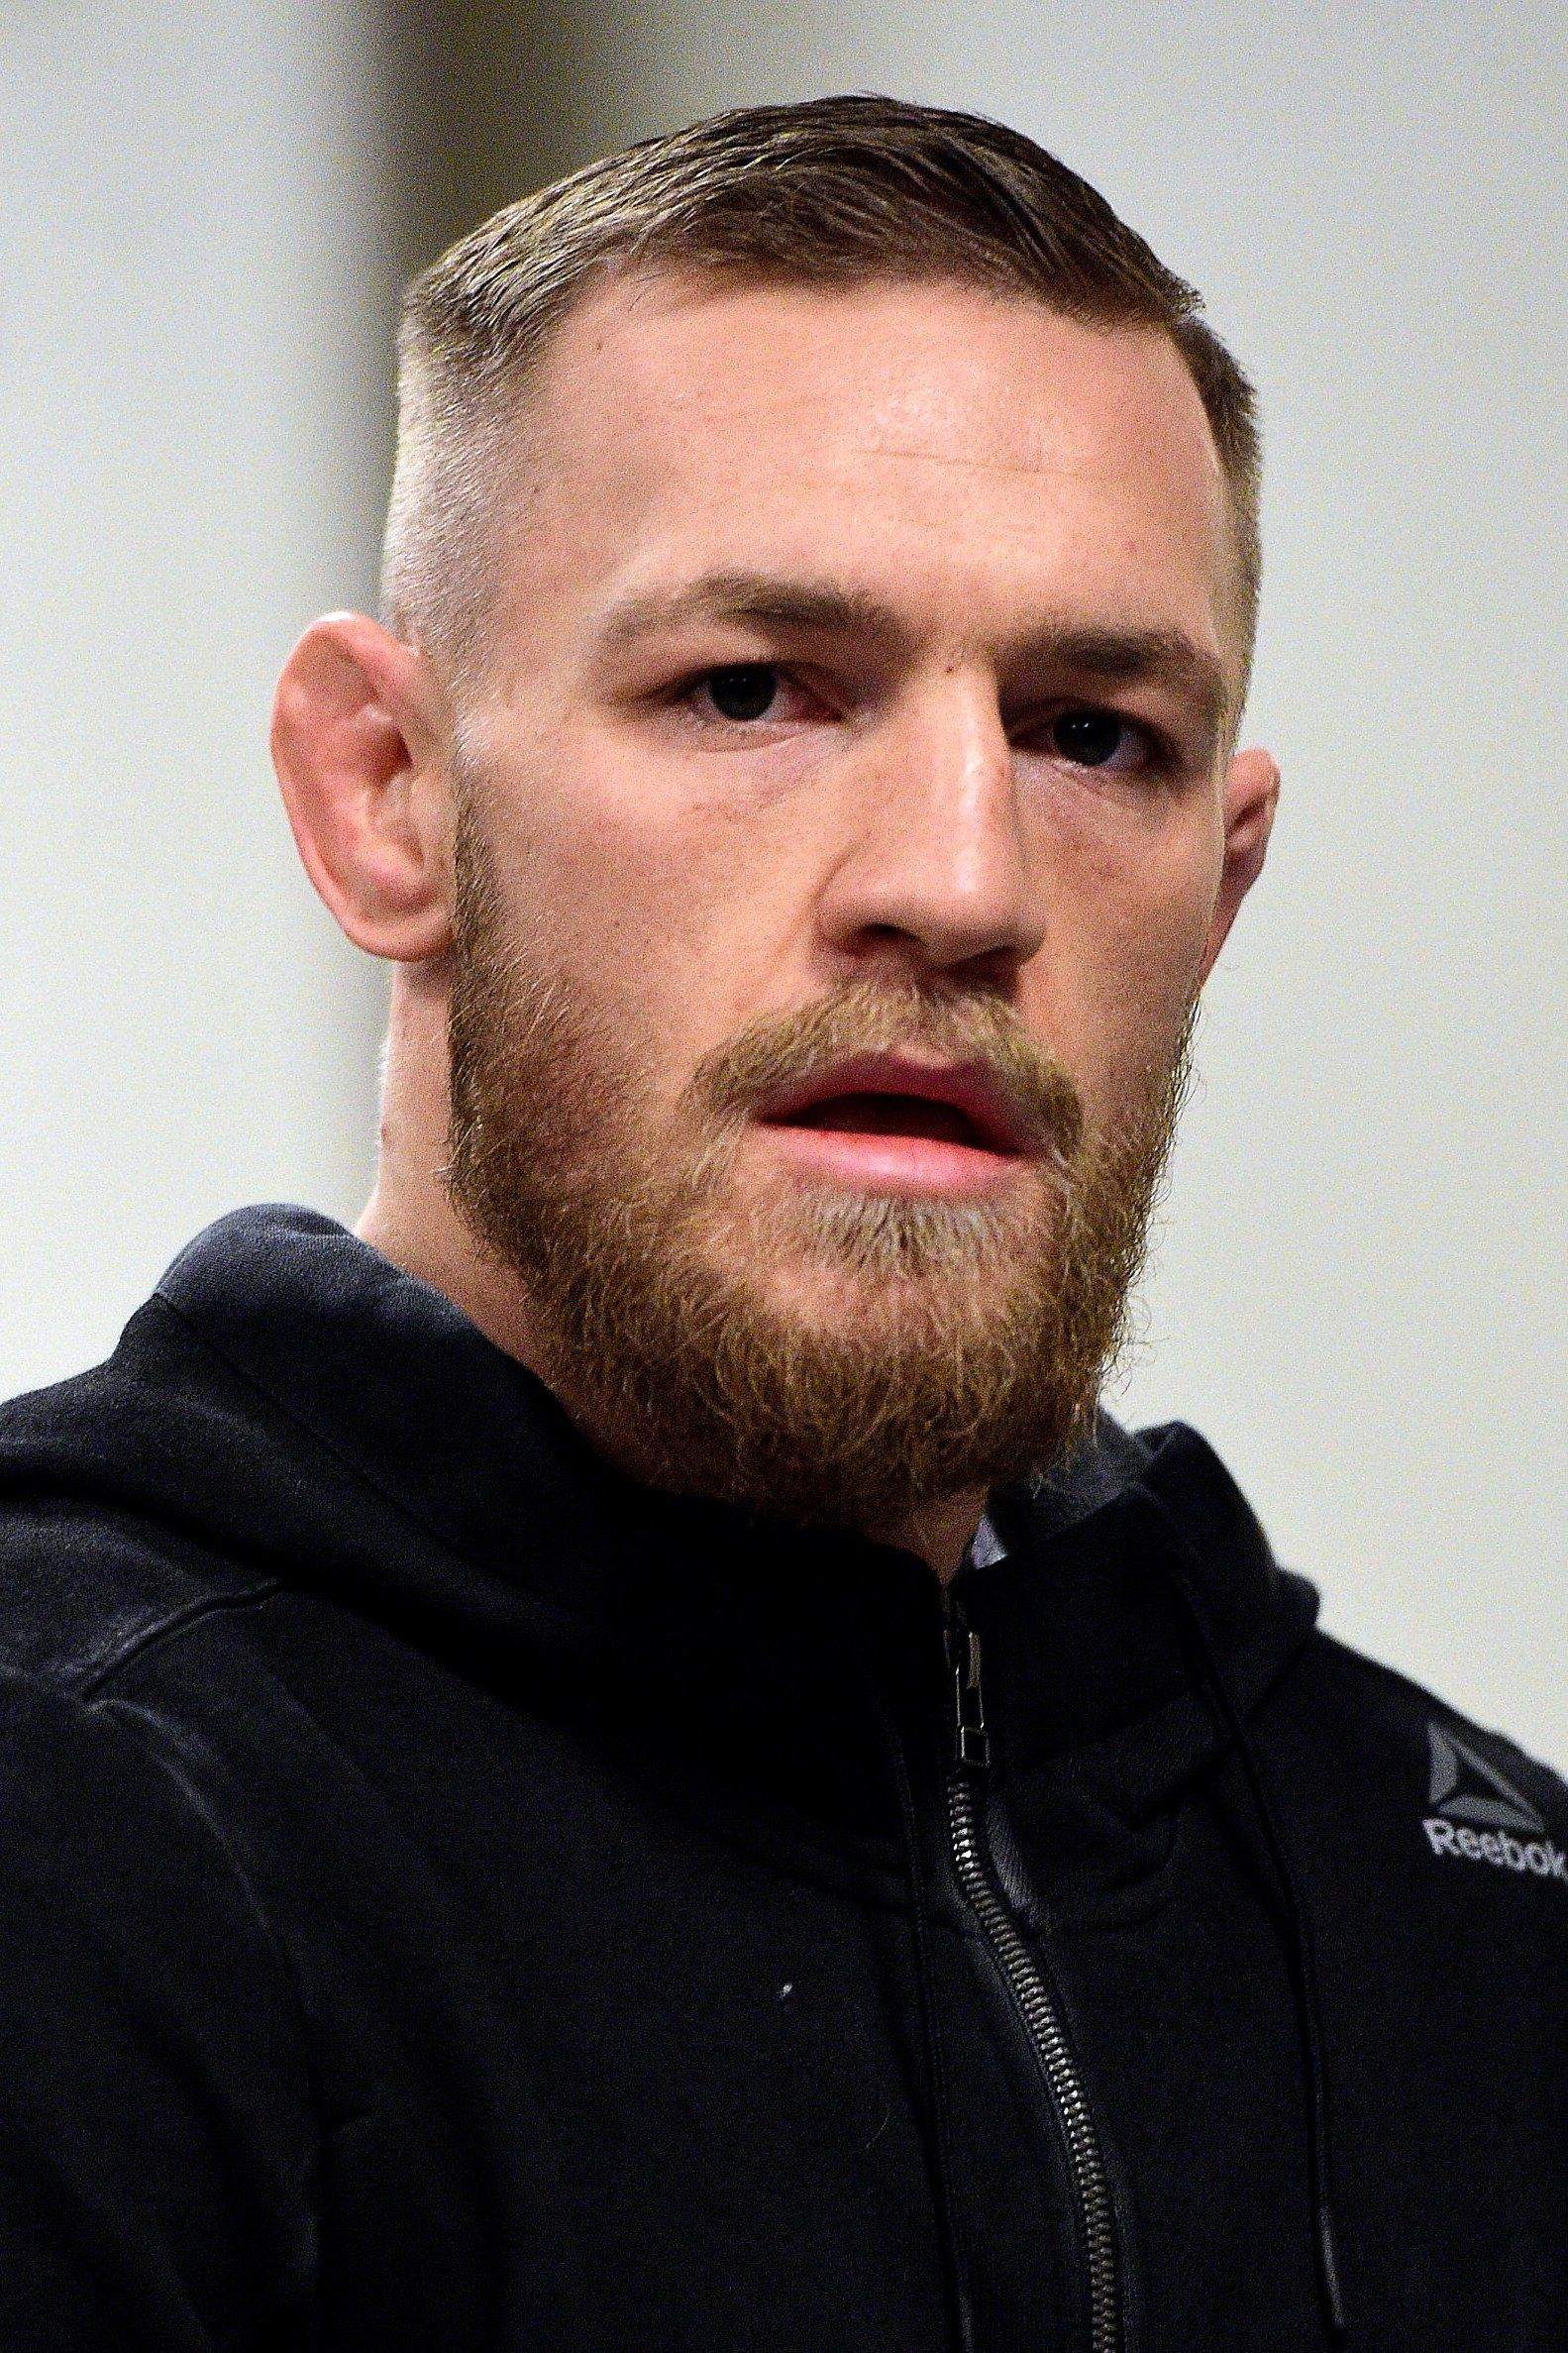 Looking For Styles for Men? Check Out These Amazing Conor Mcgregor haircut Men Designs!